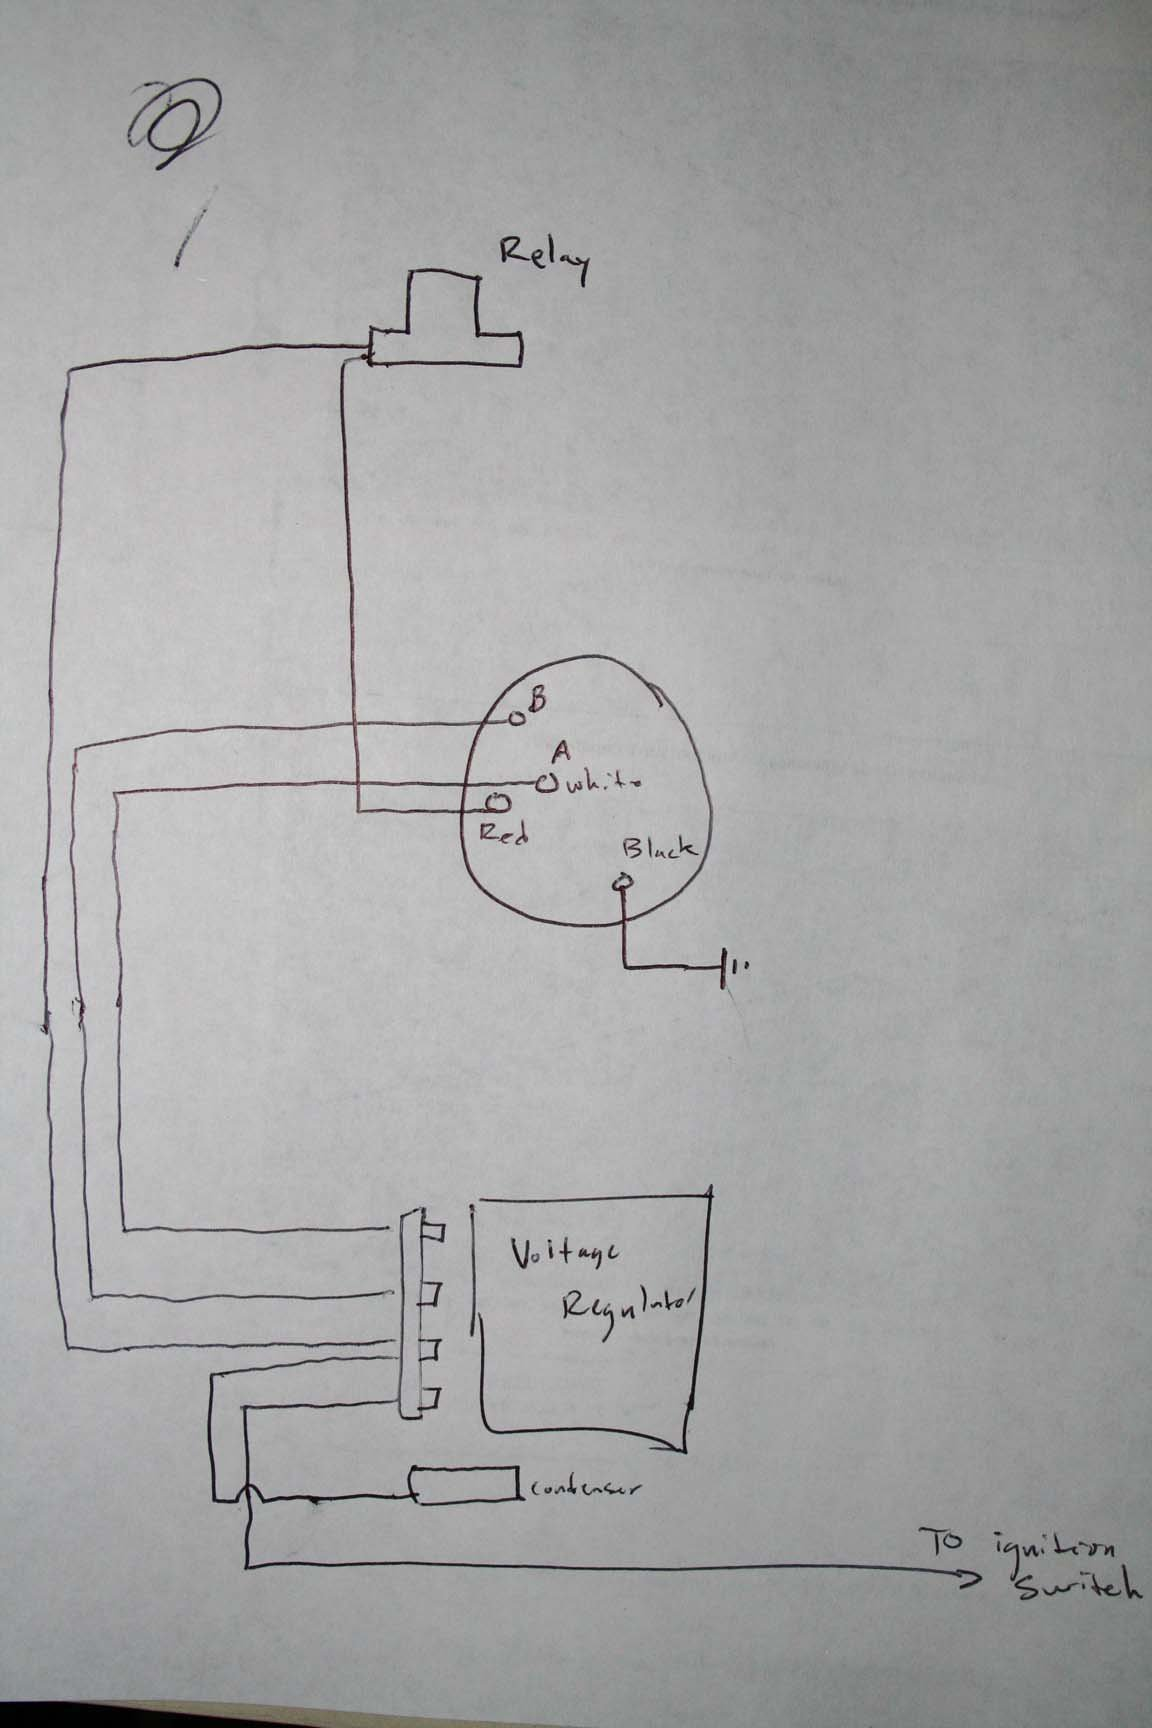 67 Mustang Voltage Regulator Wiring Diagram Starting Know About 1969 Alt On Coupe Have A Wire I M Not Sure Rh Allfordmustangs Com